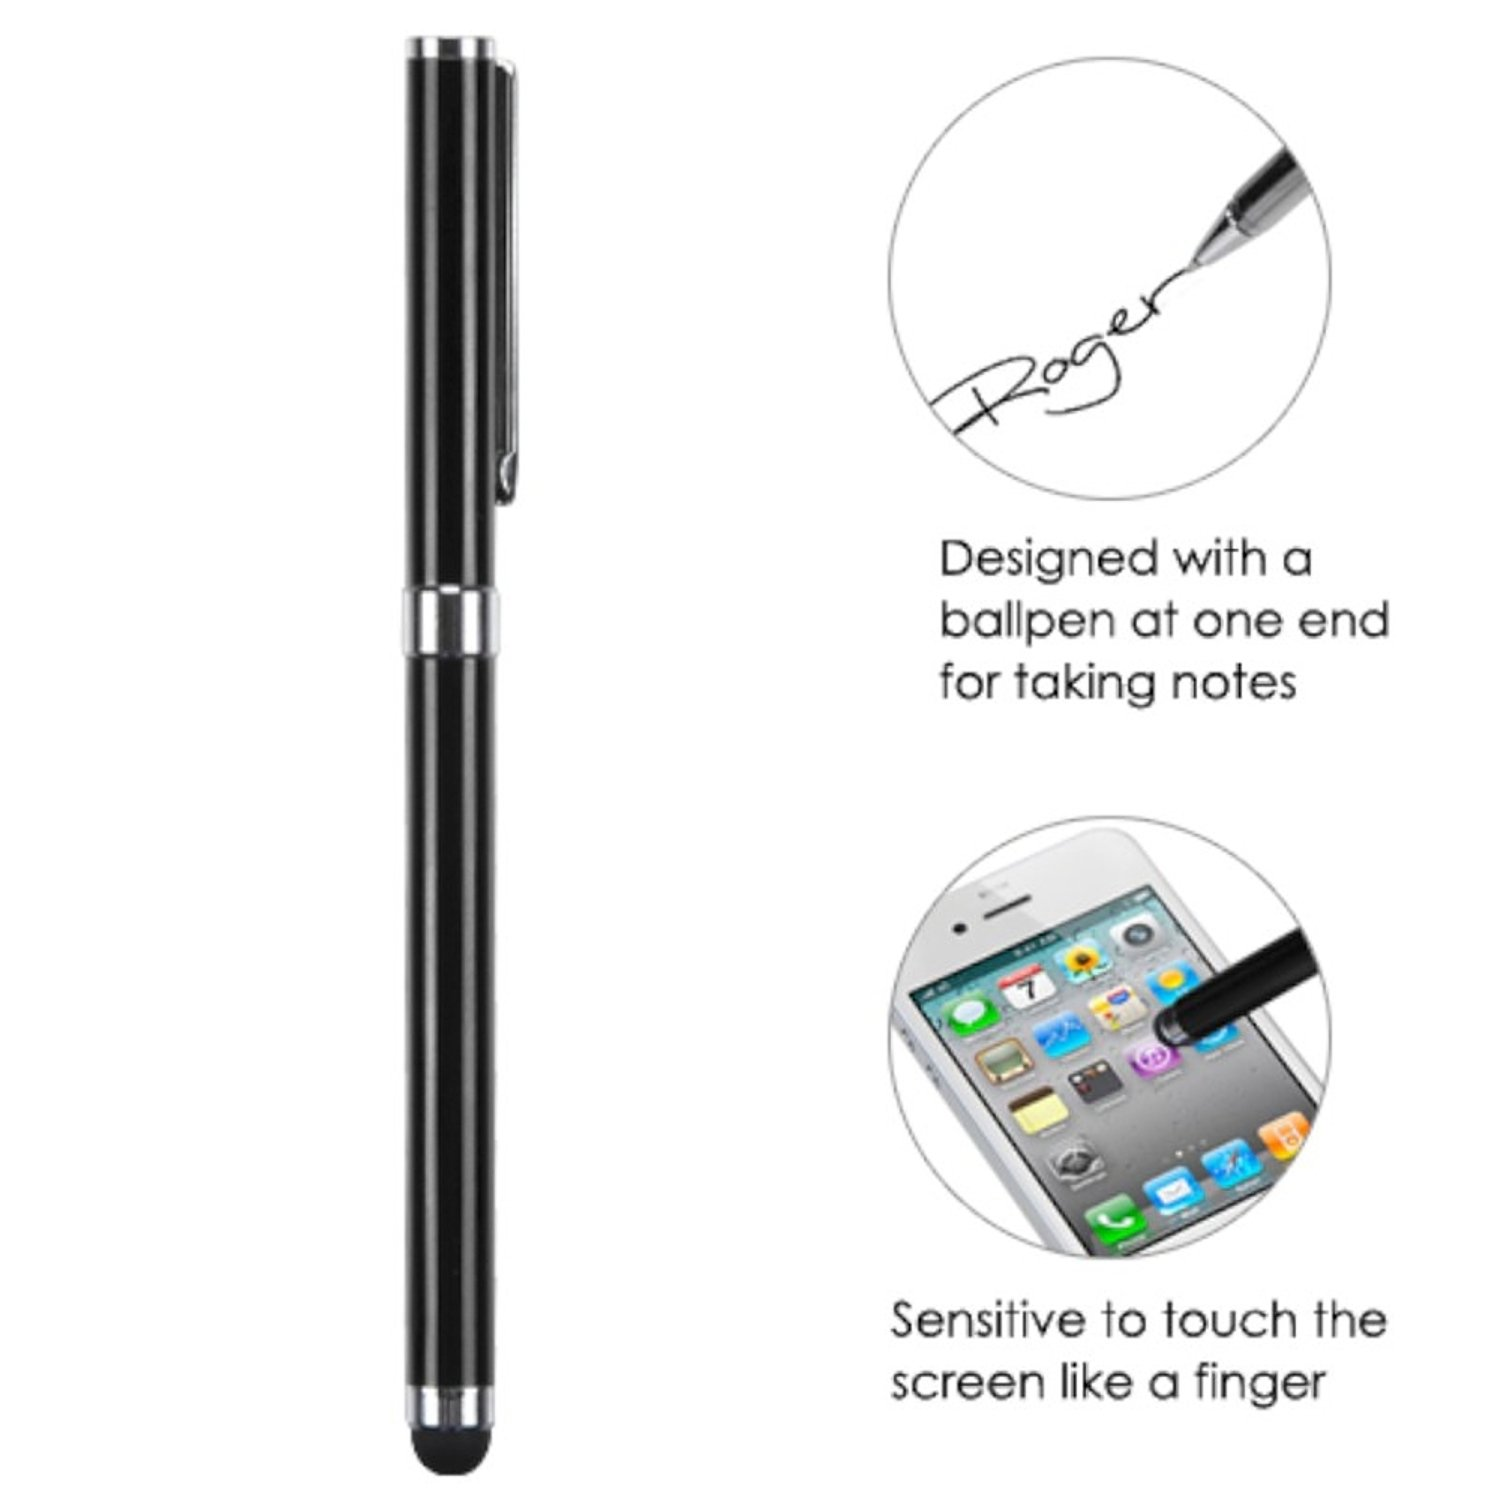 ブラックStylus pen-59 iPod (withパッケージ) iPad for Apple the New iPad Apple Apple iPhone 4s/ 4 APPLE iPad 2 Apple iPod Touch (第4世代) Apple iPad Apple iPhone 3 GS/ 3g Apple iPod Touch (第3世代) Apple iPod T B00K6NTDWM, オンセンチョウ:d9ac3840 --- sharoshka.org